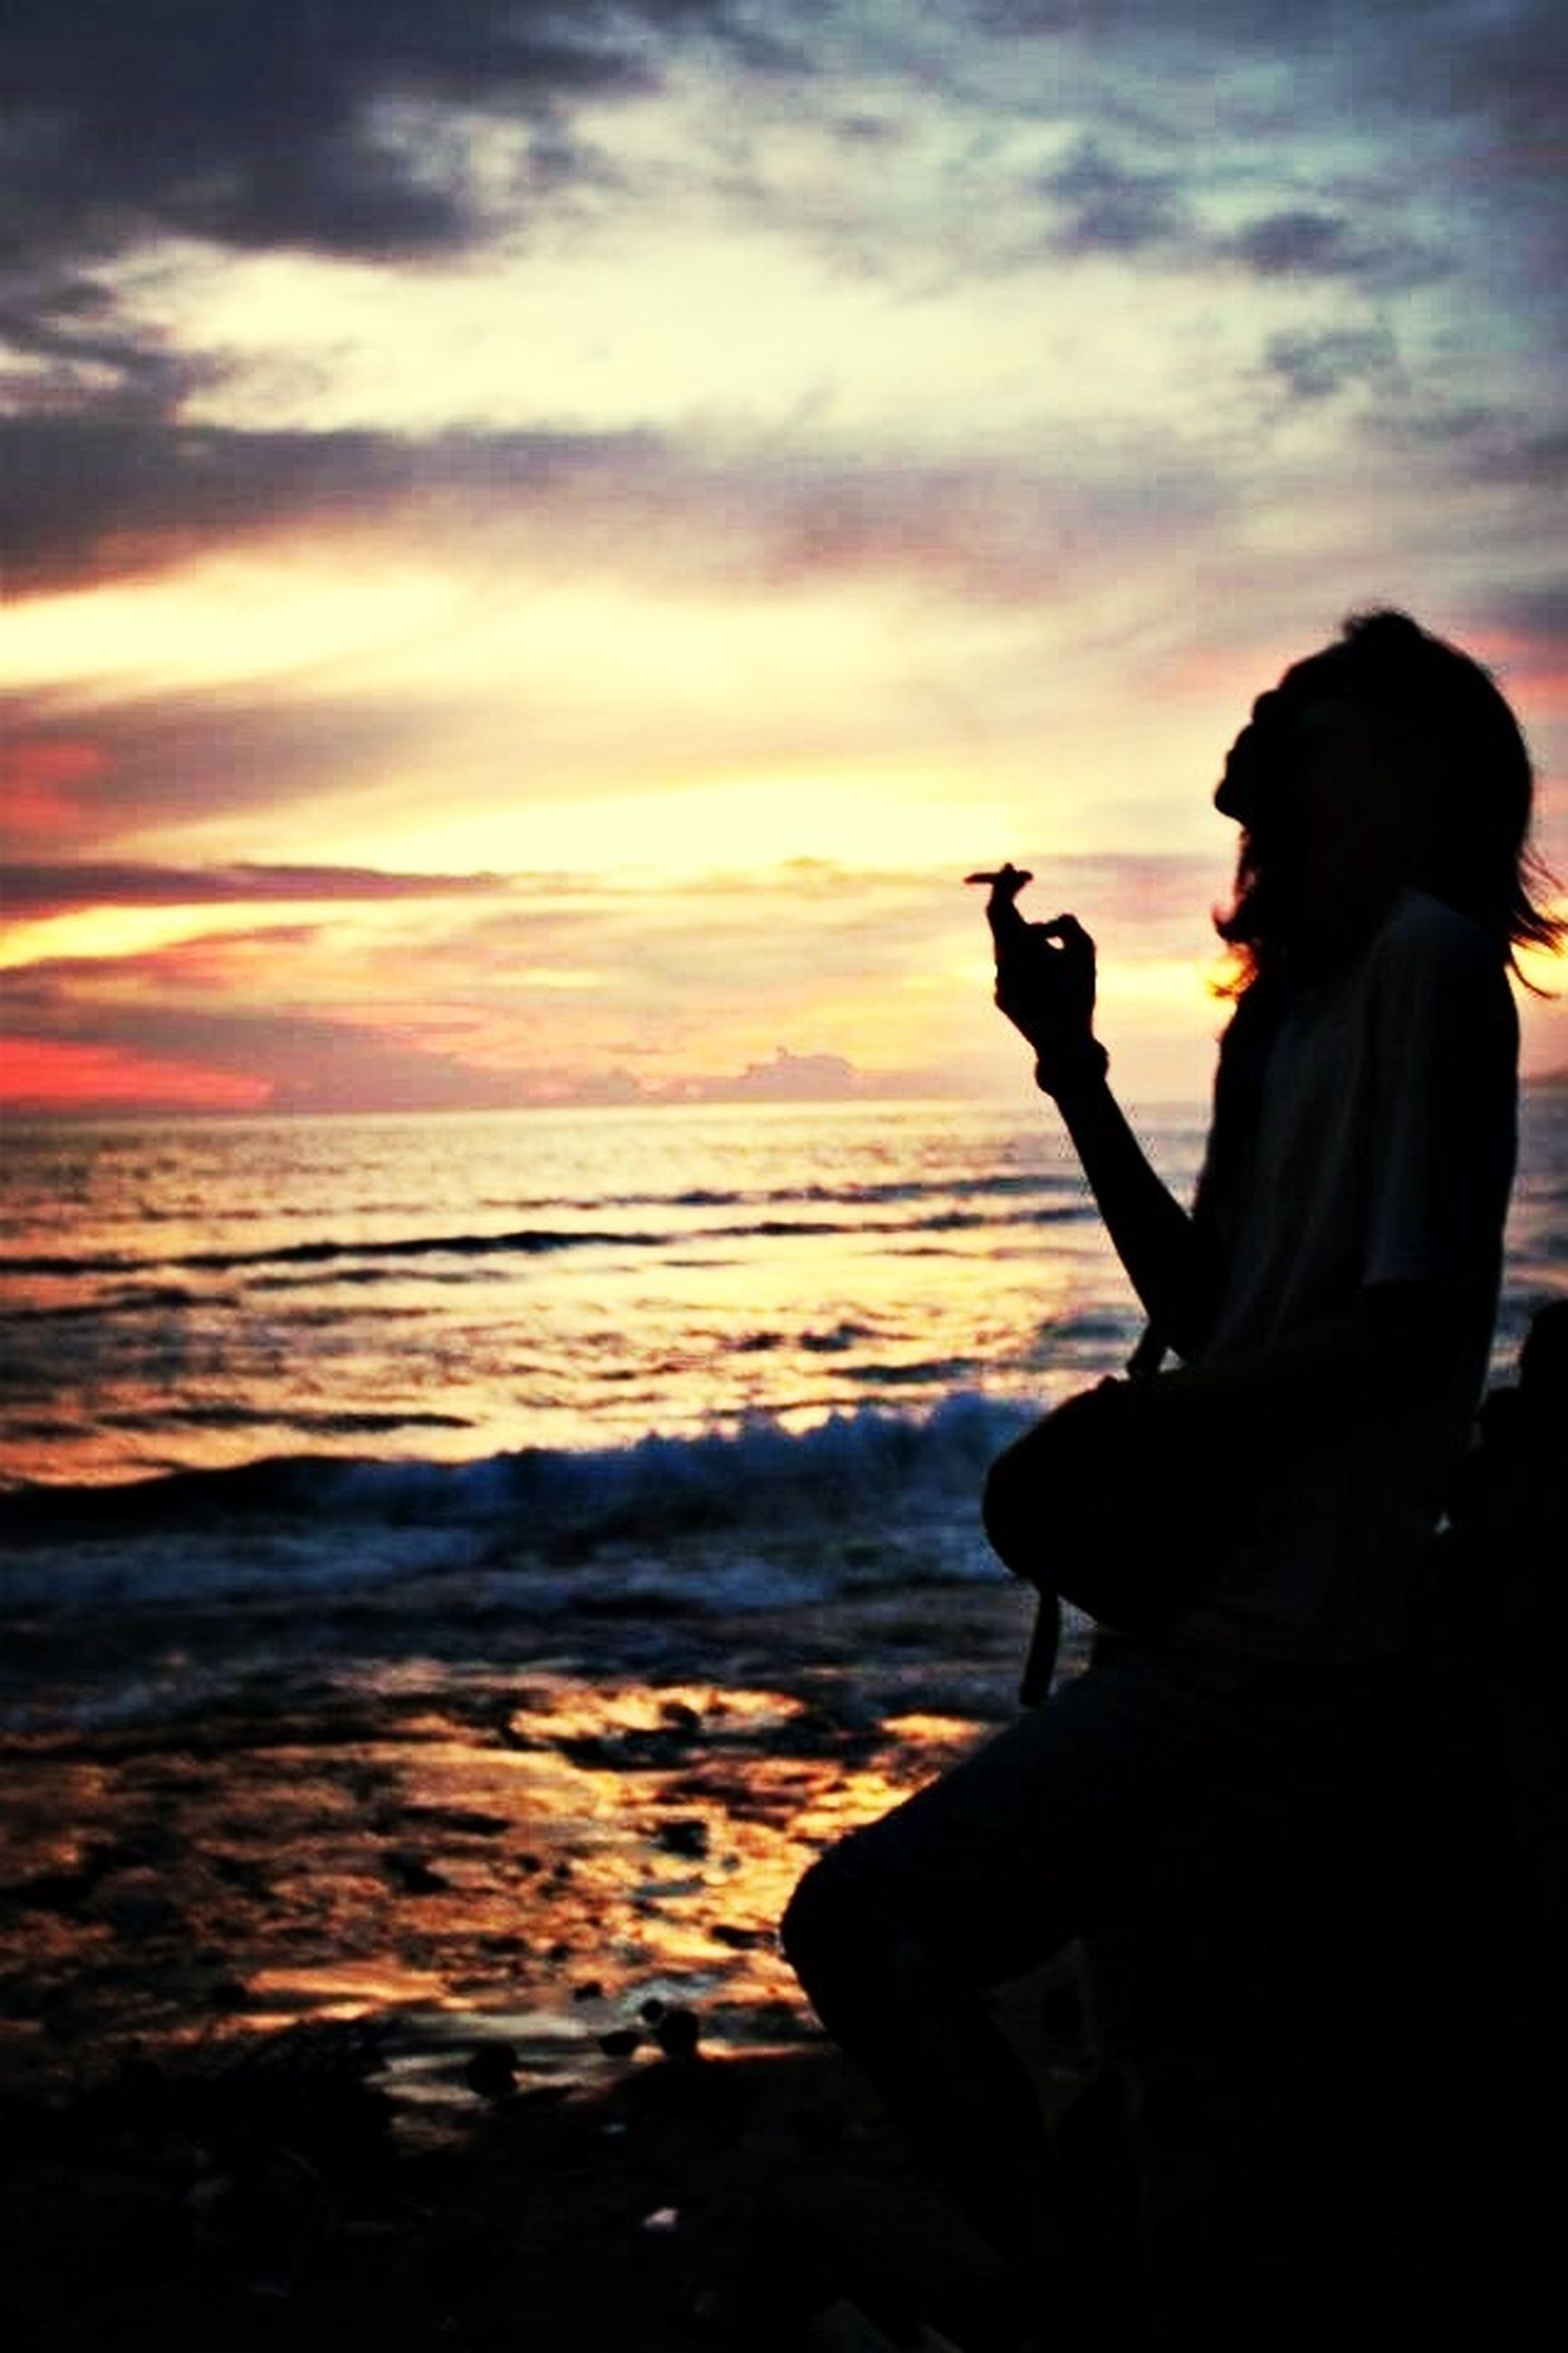 silhouette, sunset, sky, lifestyles, leisure activity, water, standing, sea, rear view, cloud - sky, scenics, person, beauty in nature, beach, men, horizon over water, nature, tranquility